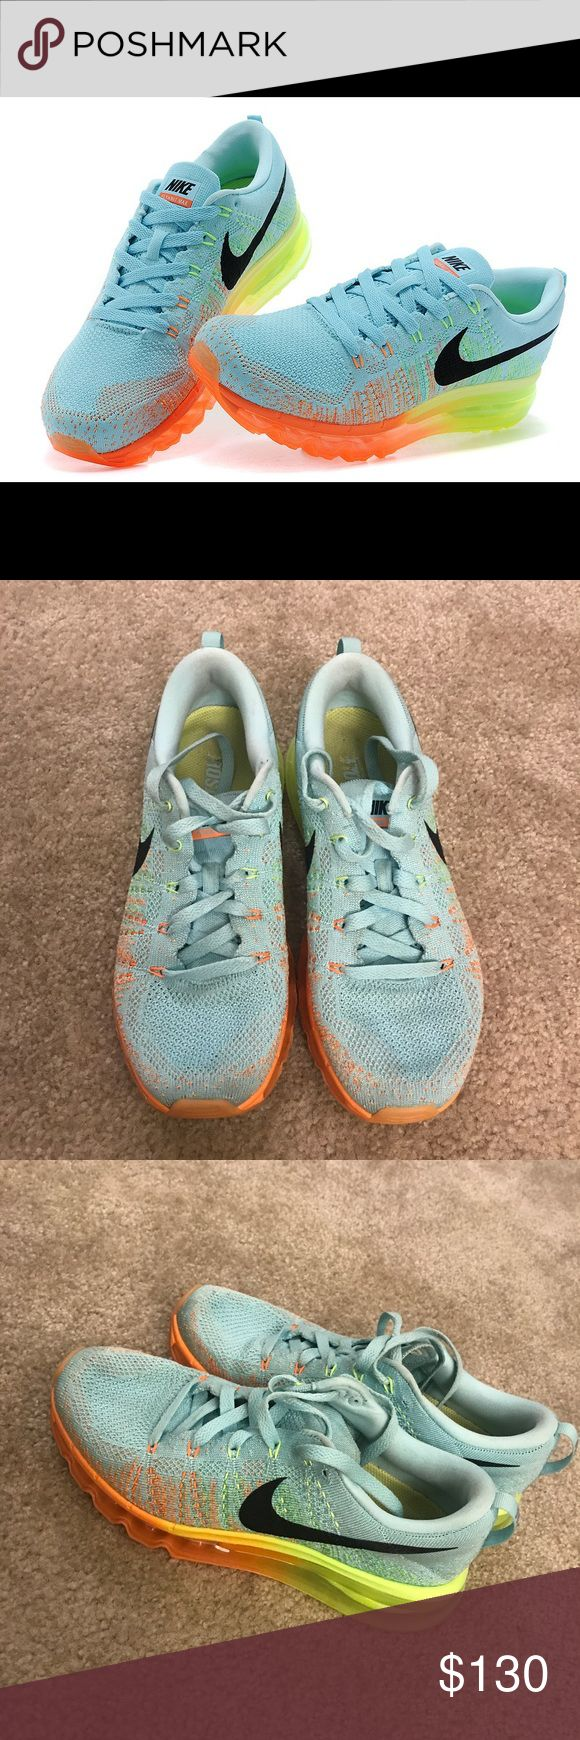 Nike Flyknit Air Max 1 Mint Blue Size 7 Nike Flyknit Air Max 1 shoes (2014) Women's size 7 / UK 4.5 / EUR 38 Color is mint blue. Sole is orange to neon yellow gradient  Beautiful shoe! Only worn a handful of times Nike Shoes Sneakers